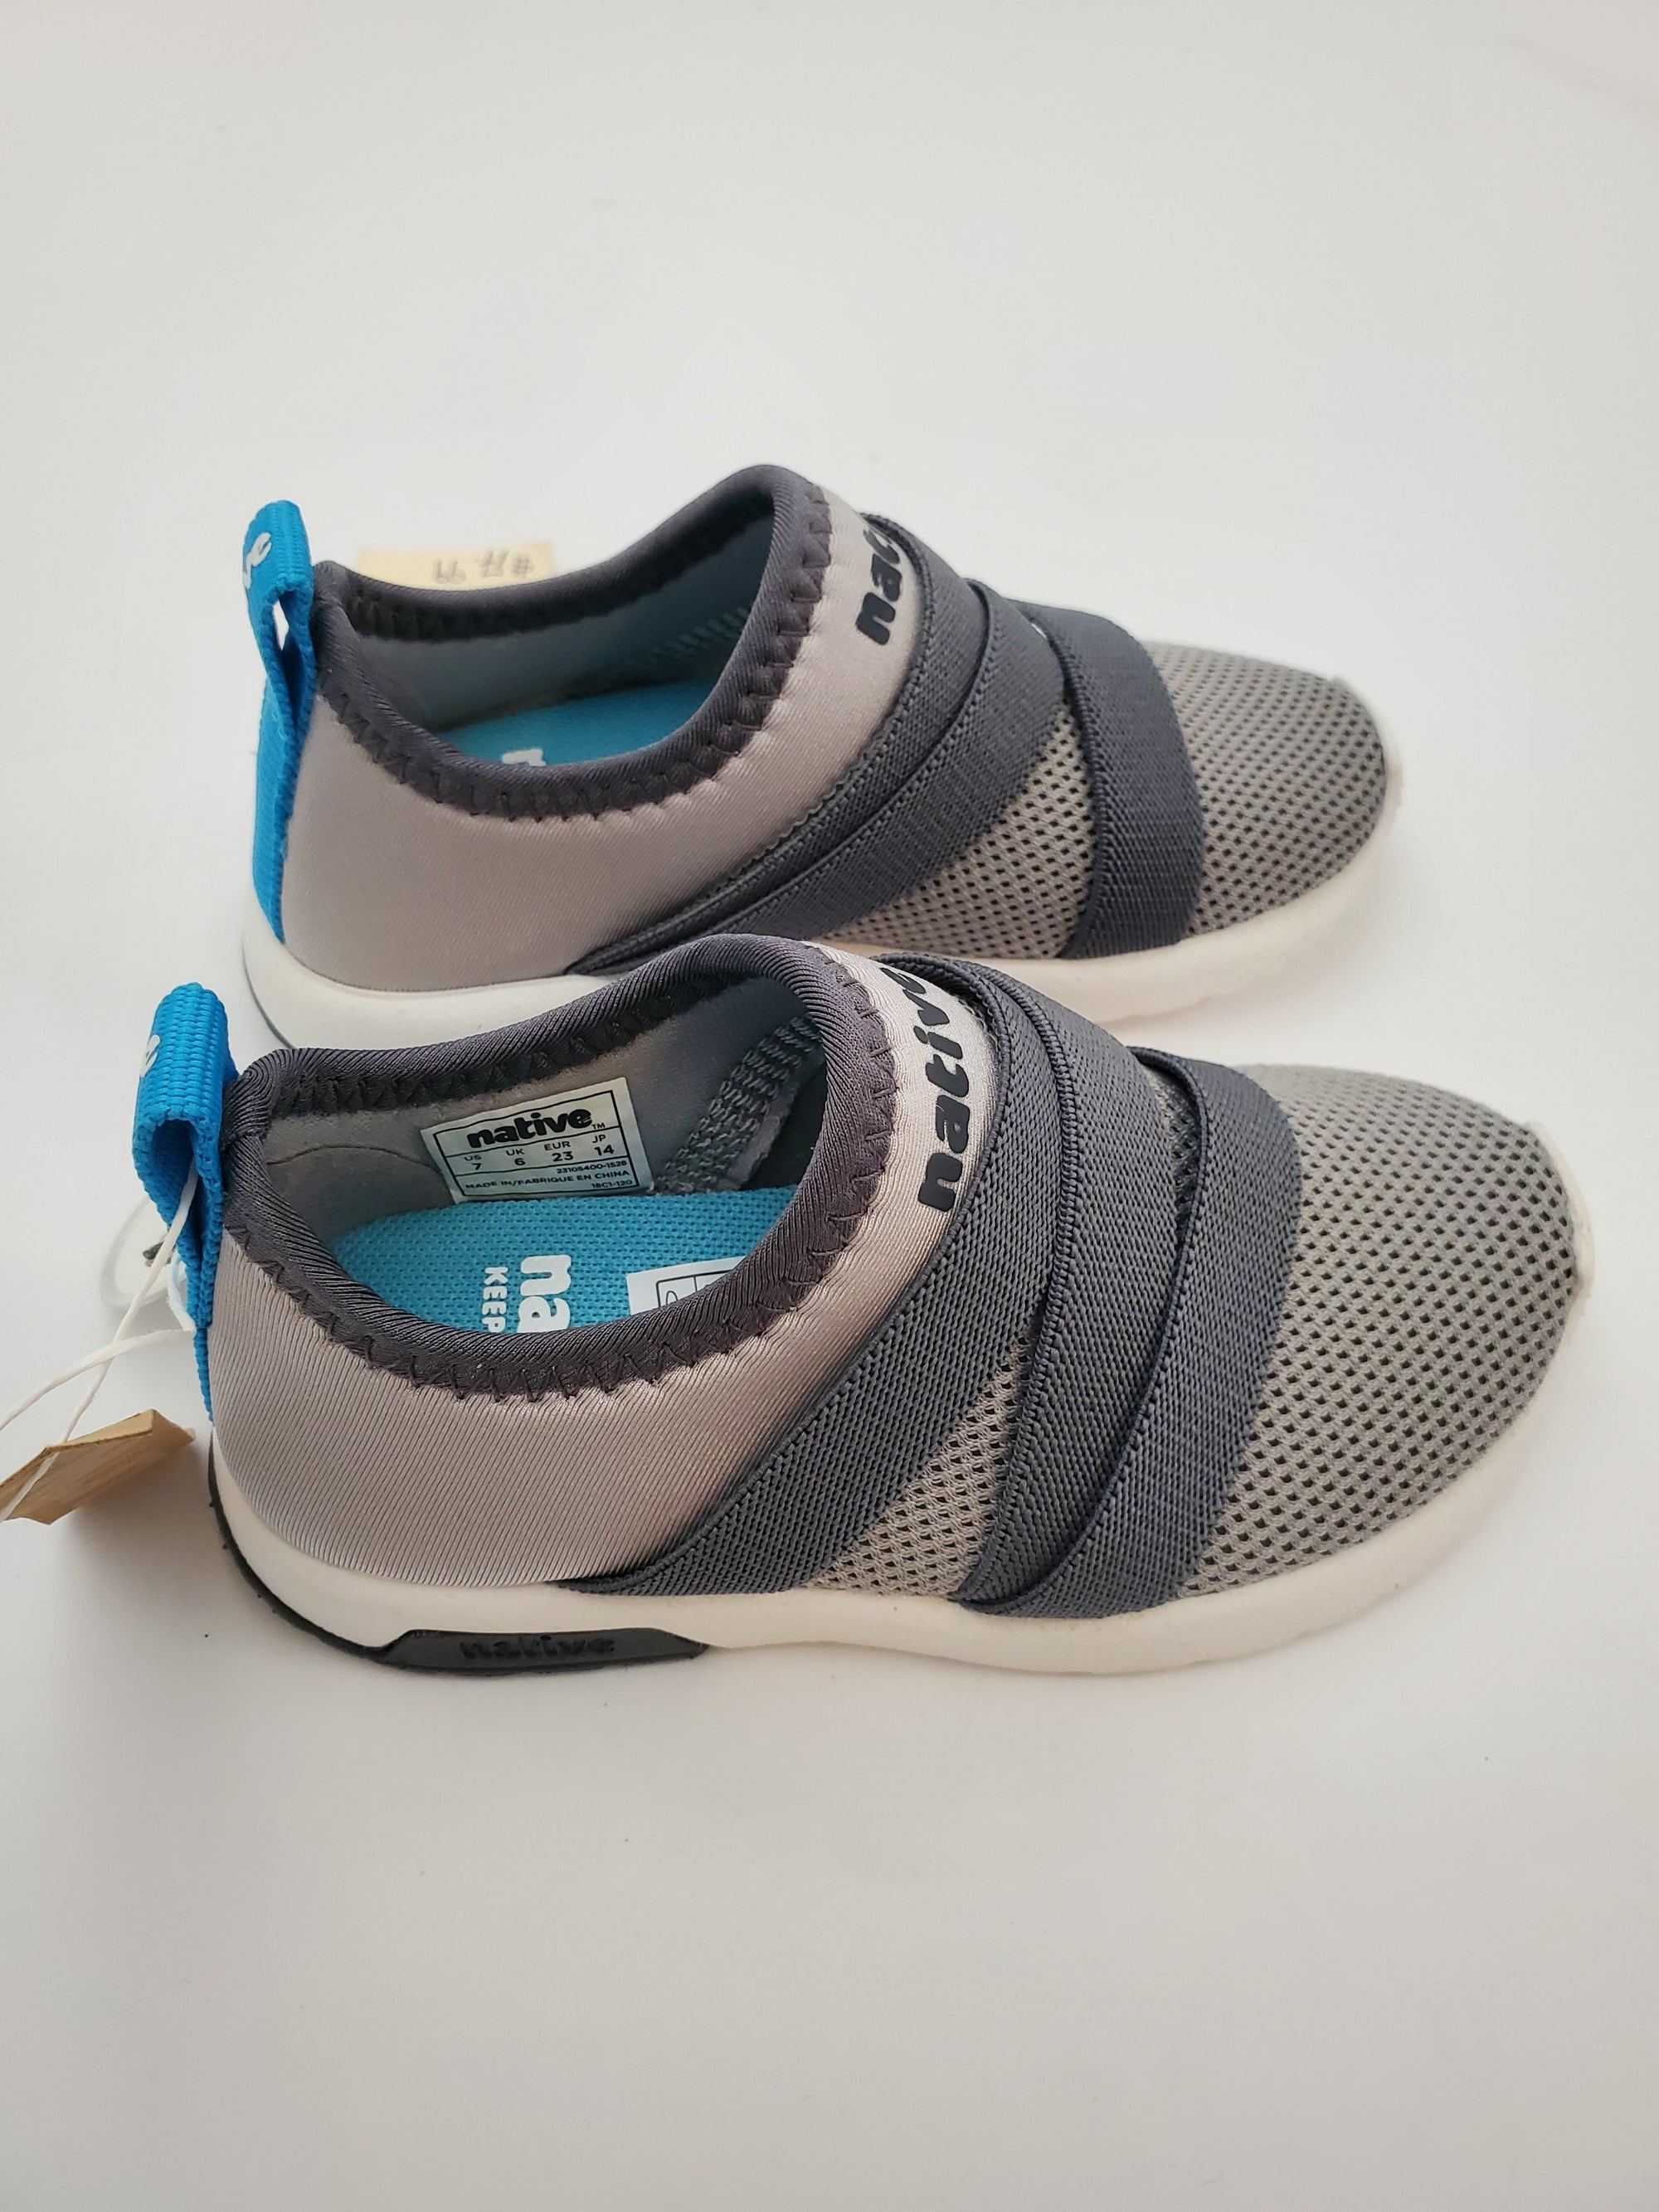 C7 Native Athletic Shoes - Grey